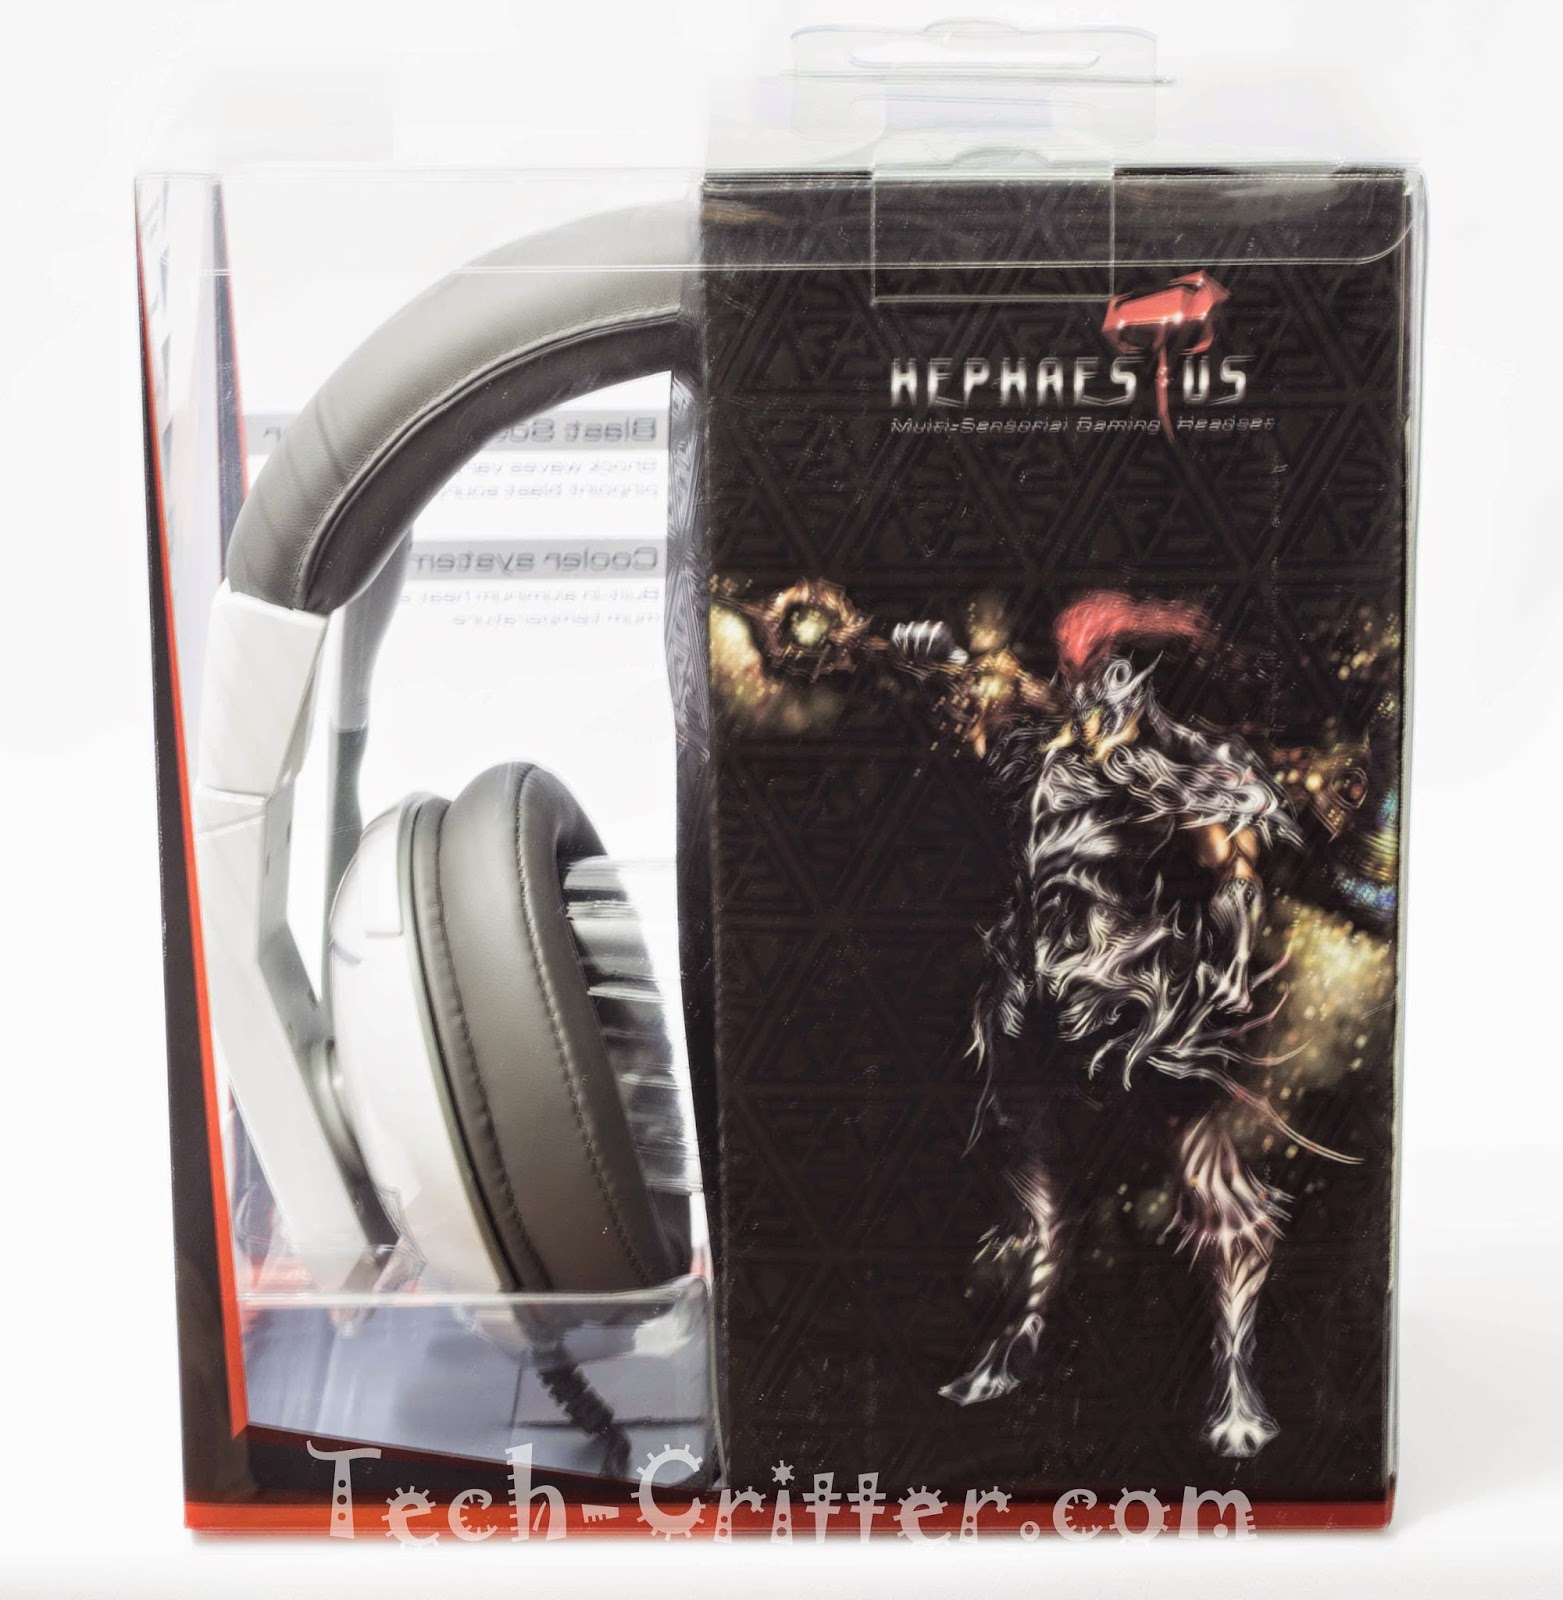 Unboxing & Review: Gamdias Hephaestus Gaming Headset 62